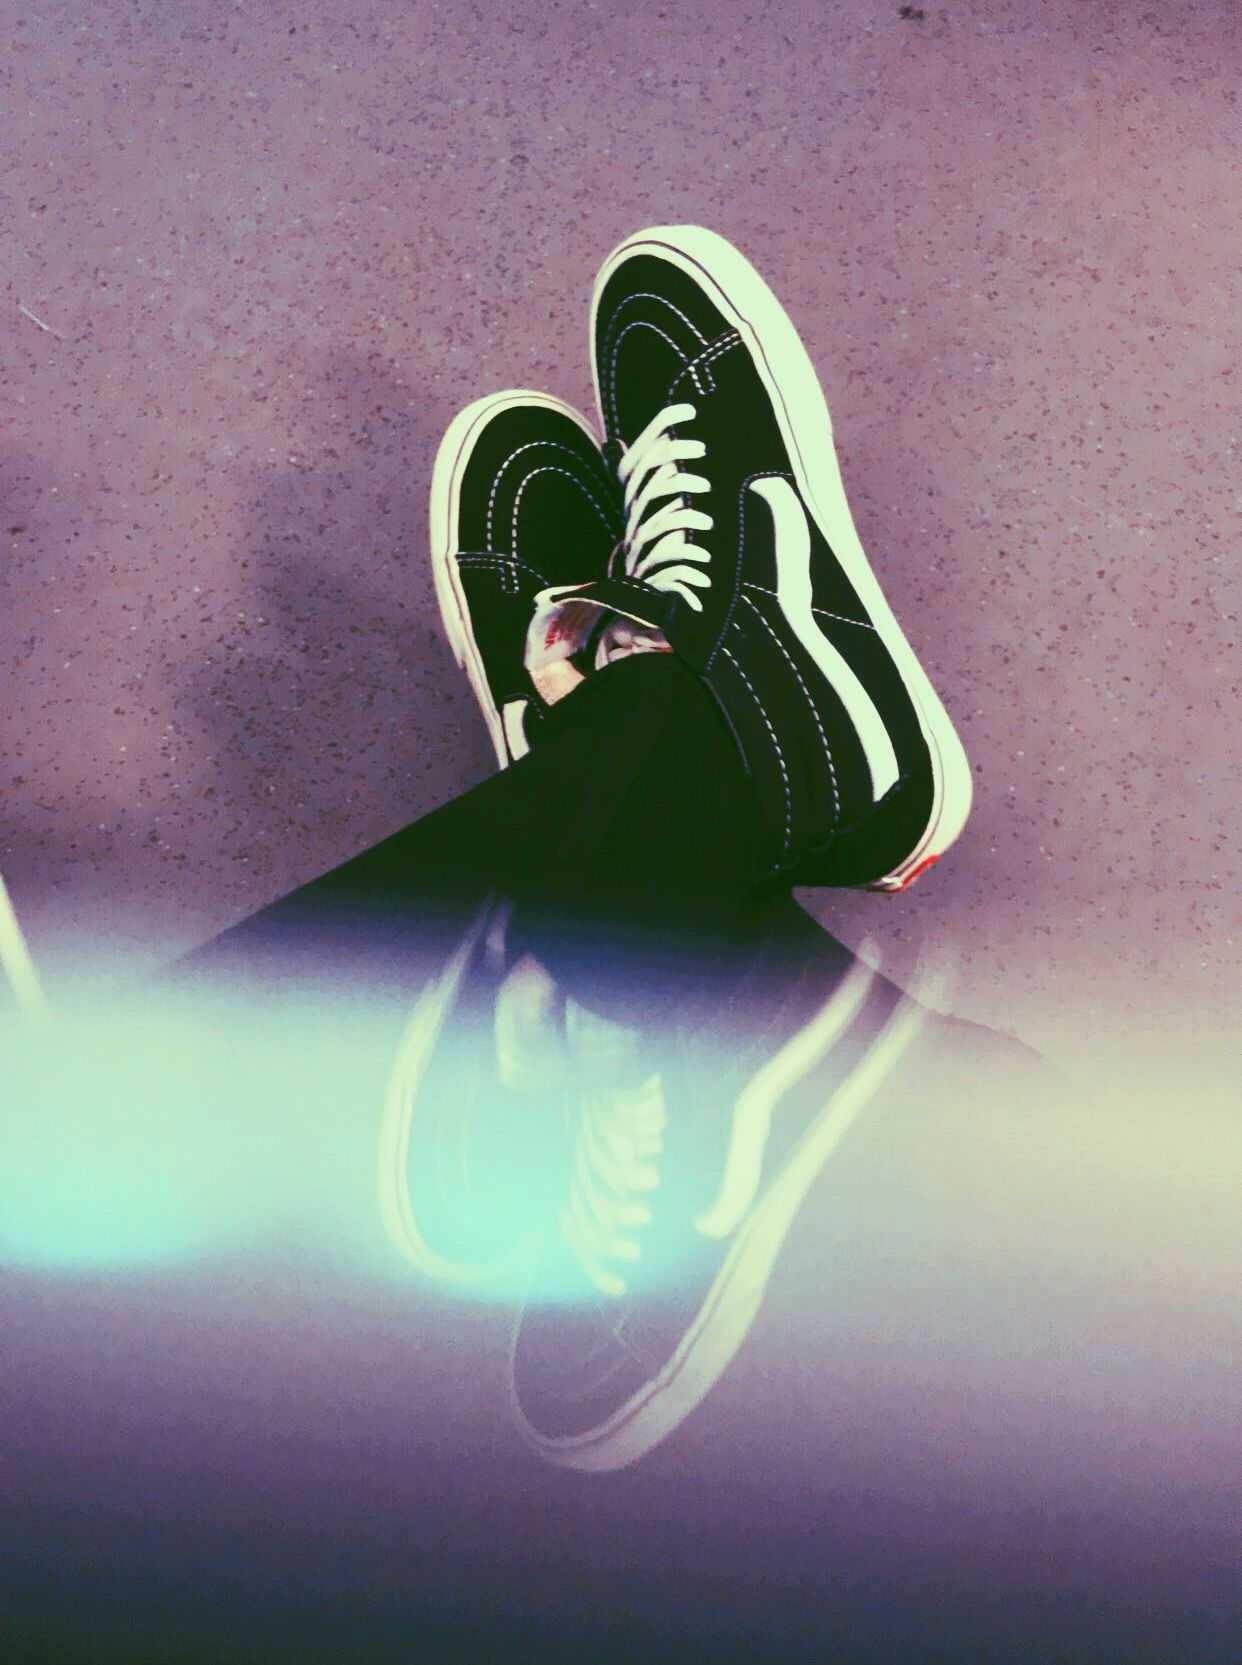 vans sapatos aesthetic sapatos vans oc: oliver grey ( olethros ) Pinterest 3654dc